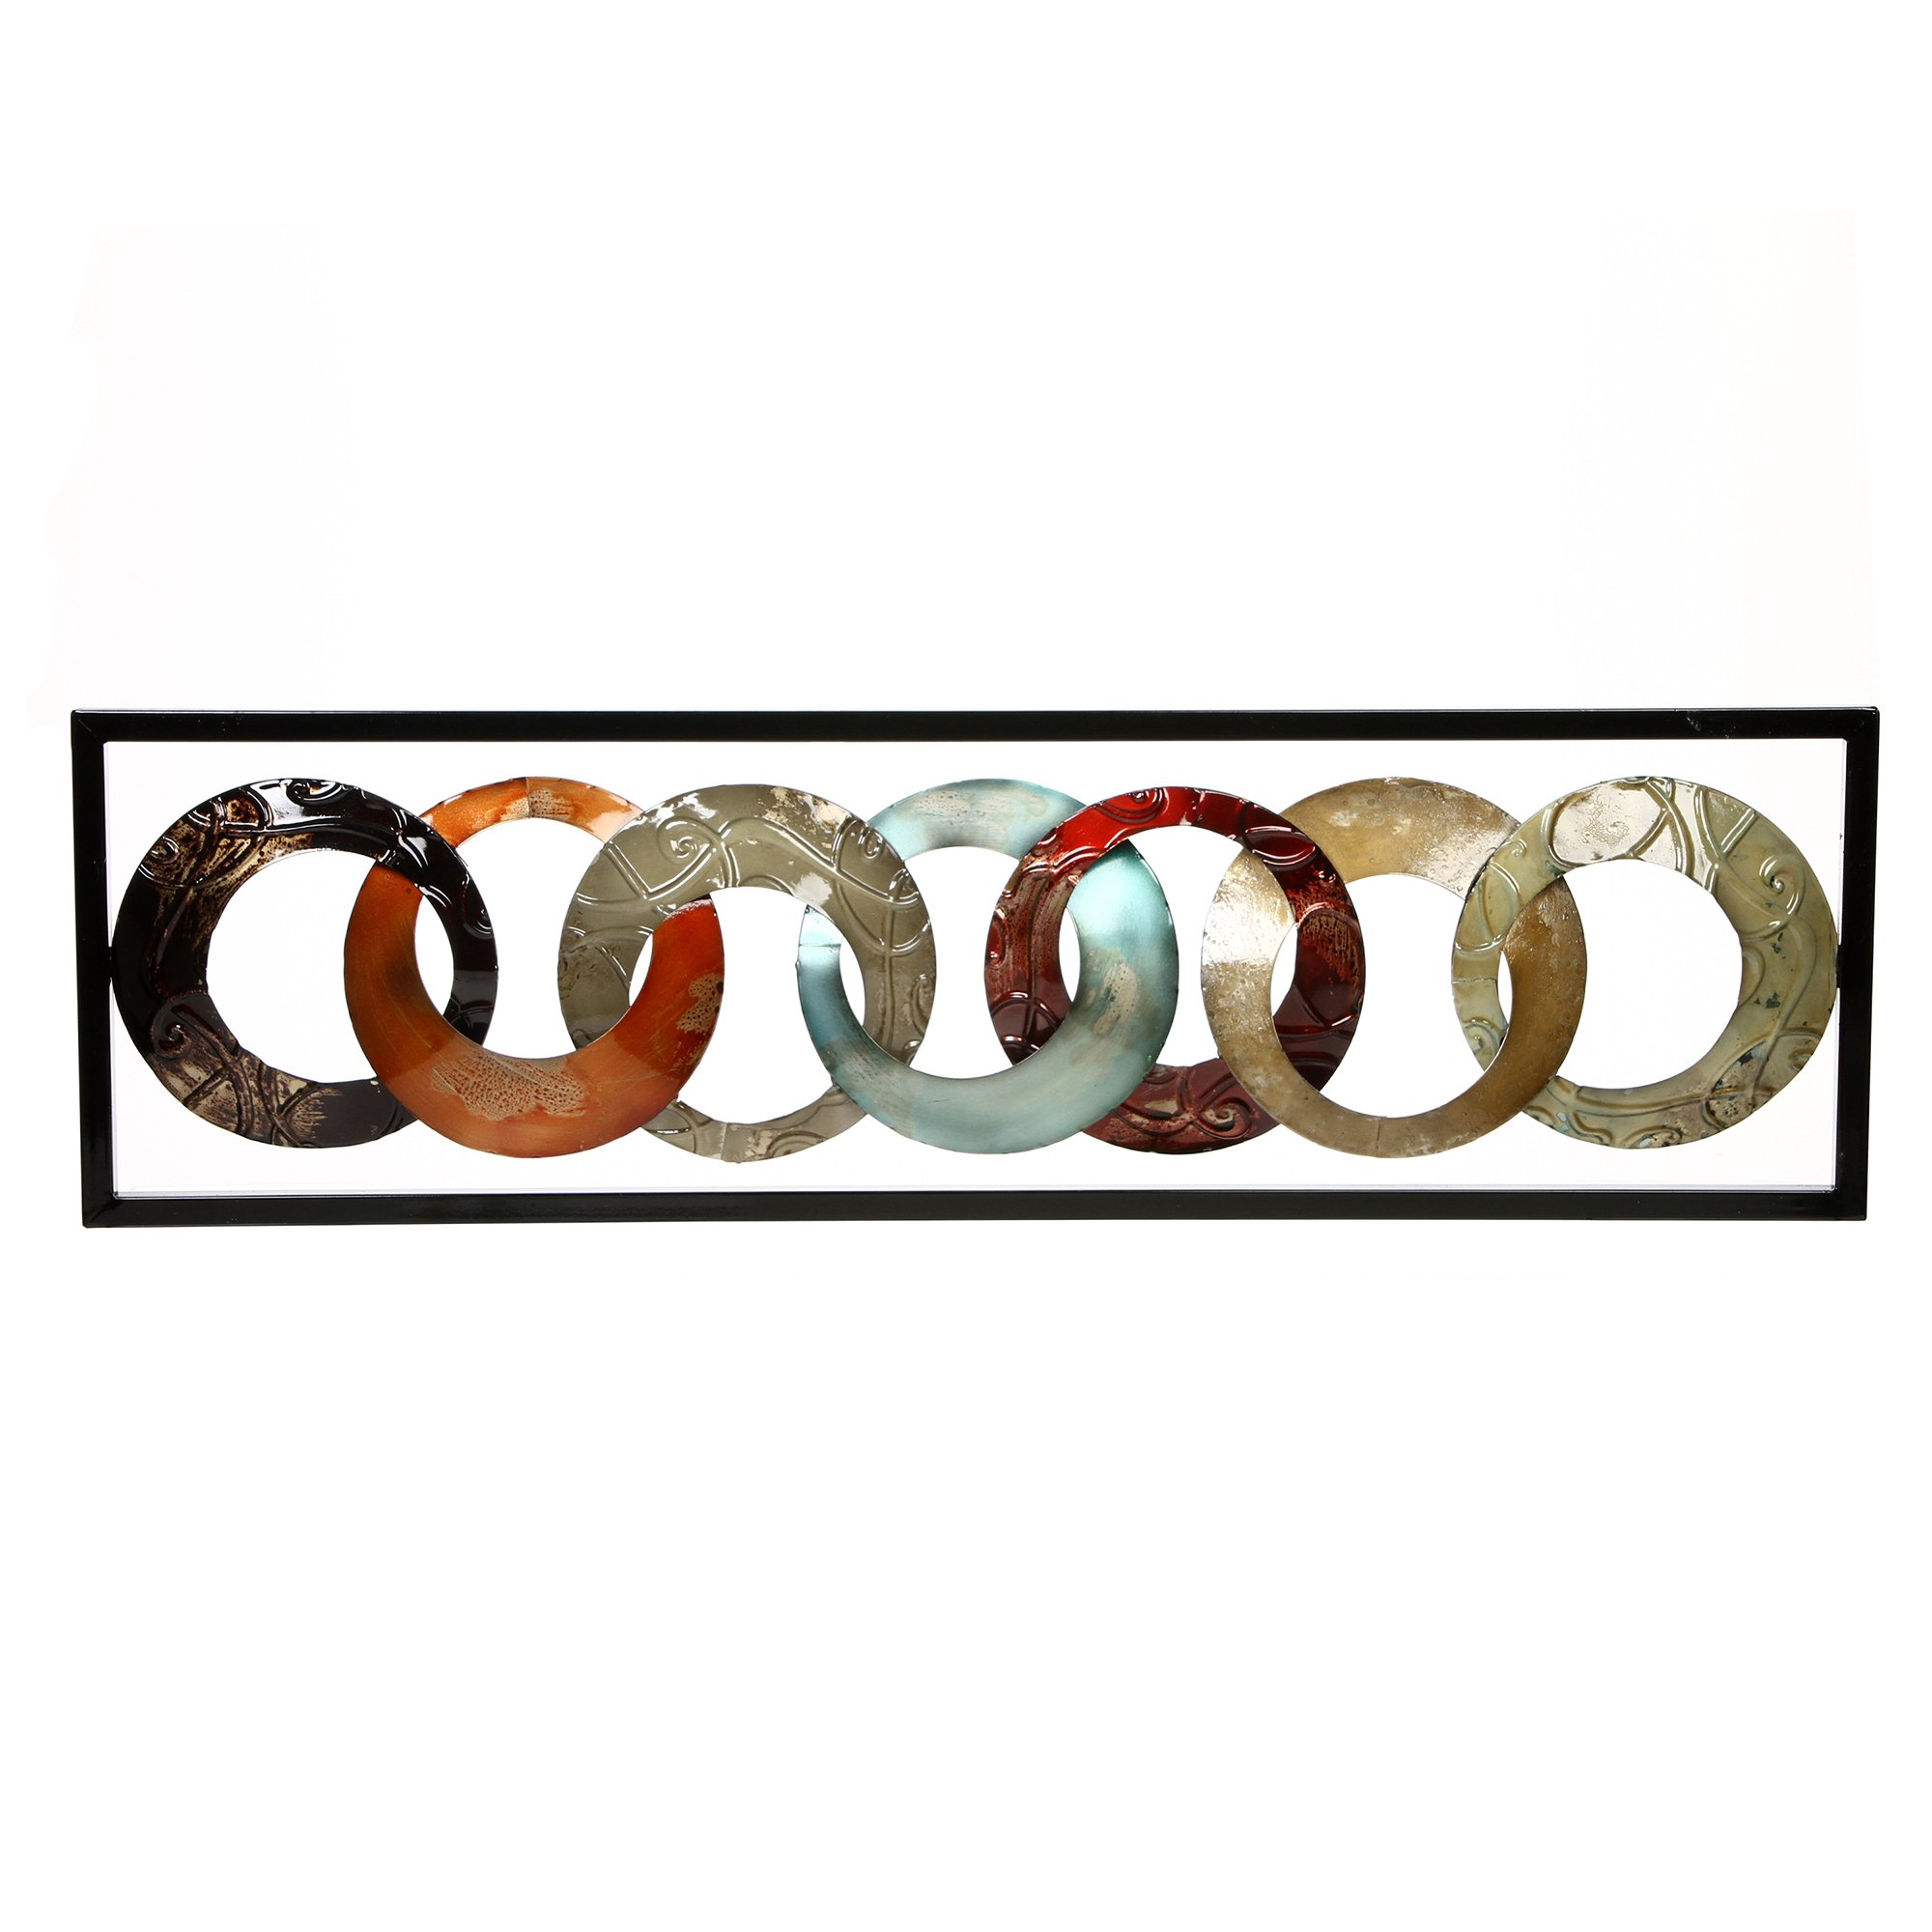 Hosley Metal Wall Décor 35'' High. Ideal Gift for Home, Weddings, Party, Spa, Meditation, Home Office, Dorm O4